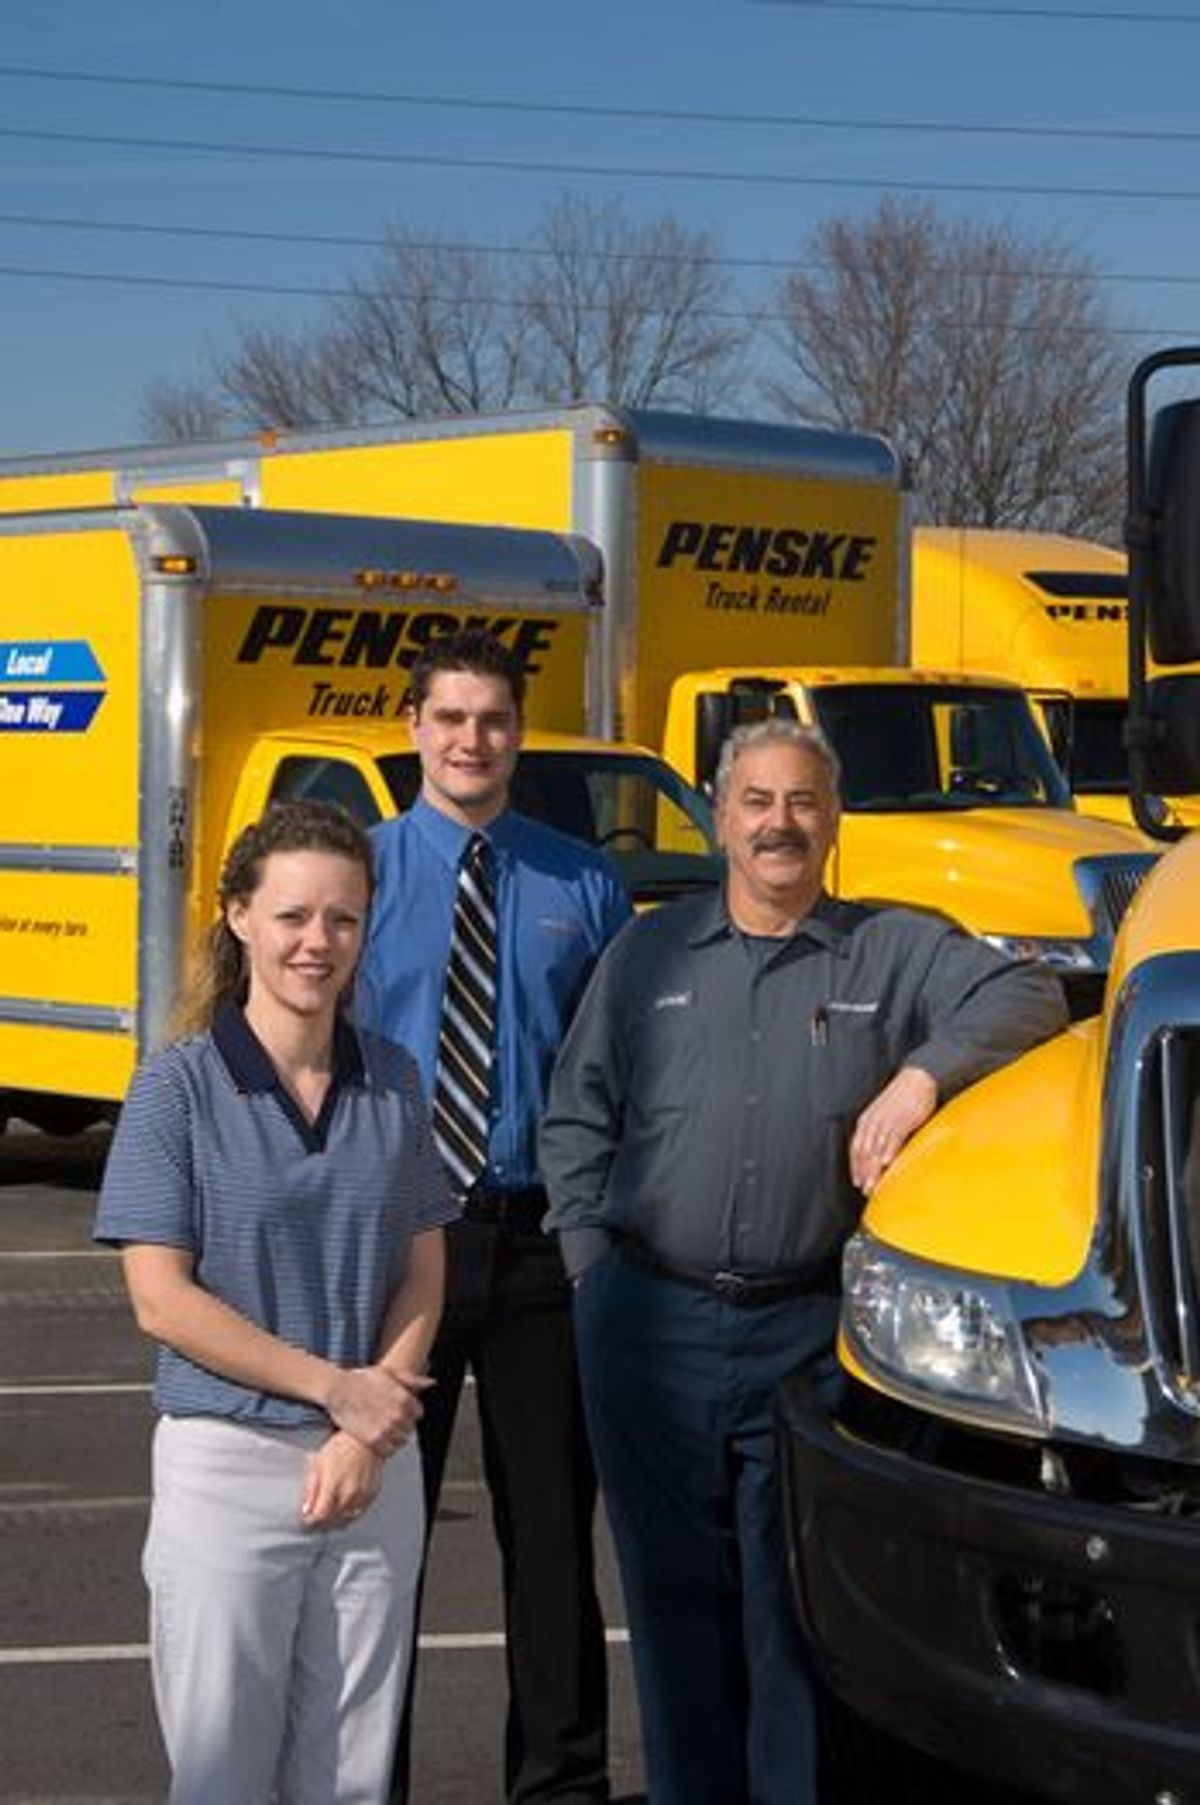 Penske Hiring for Positions in Maryland